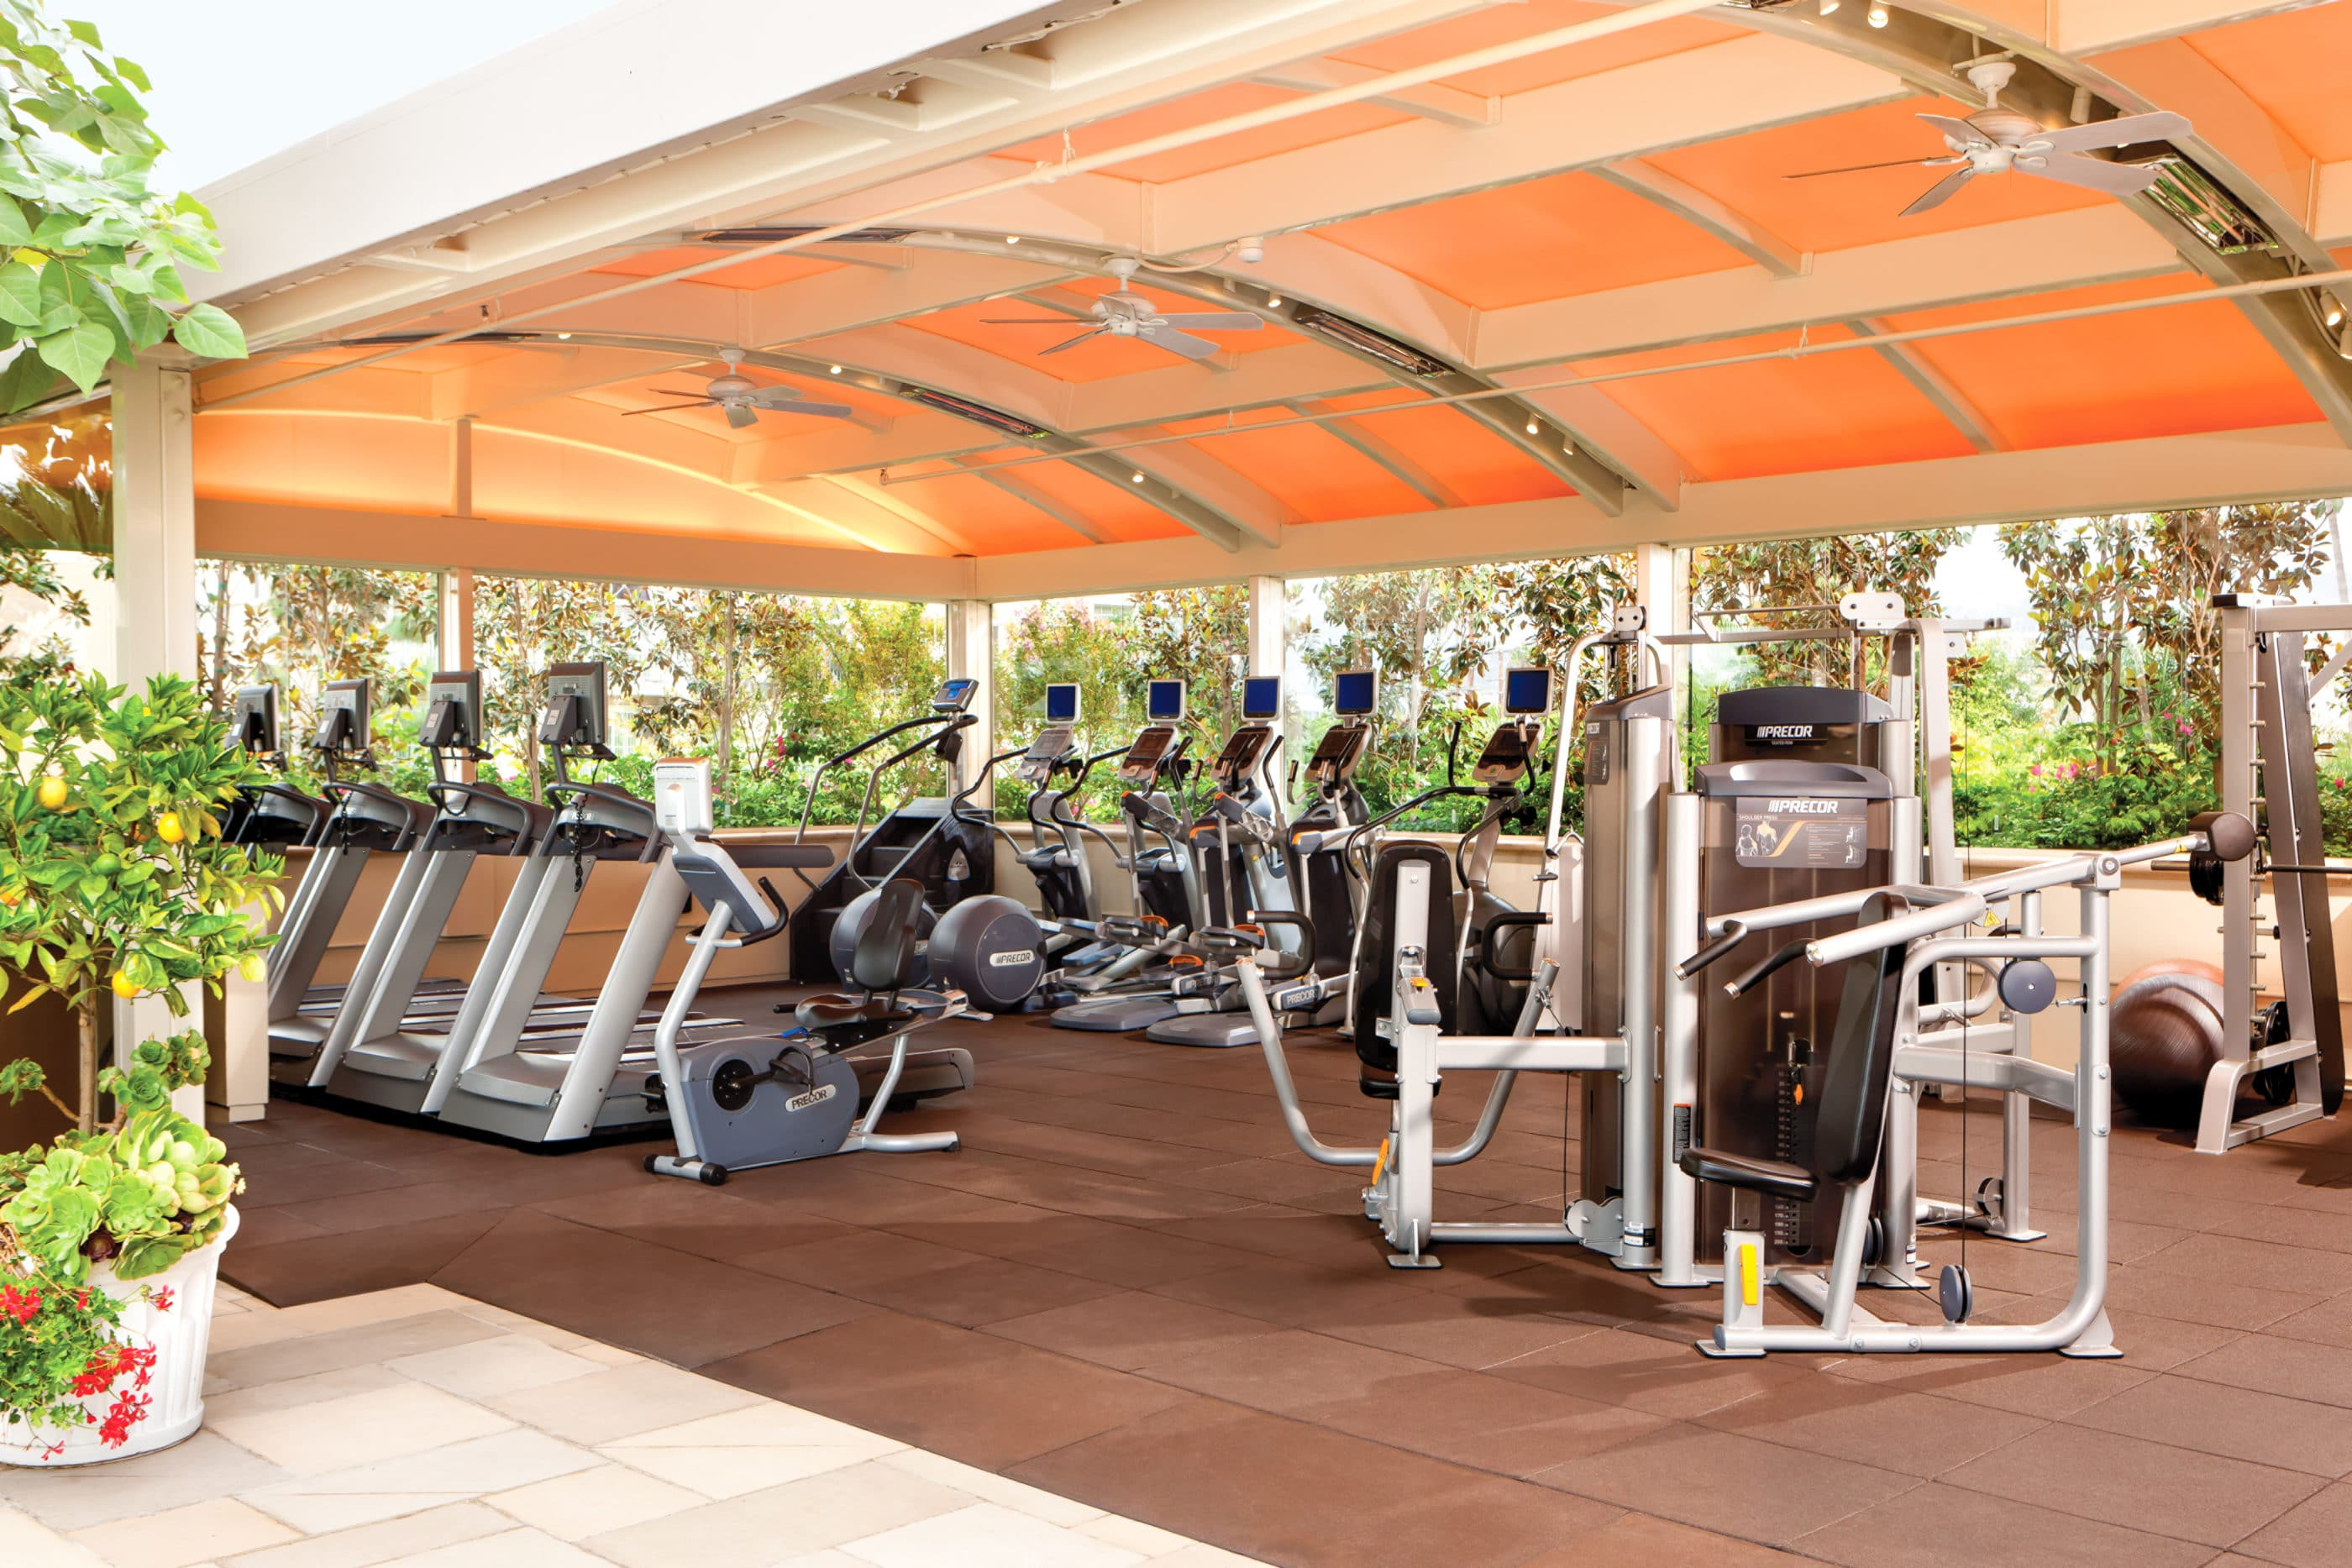 A canopy covers cardio and weight equipment at the open-air fitness center.